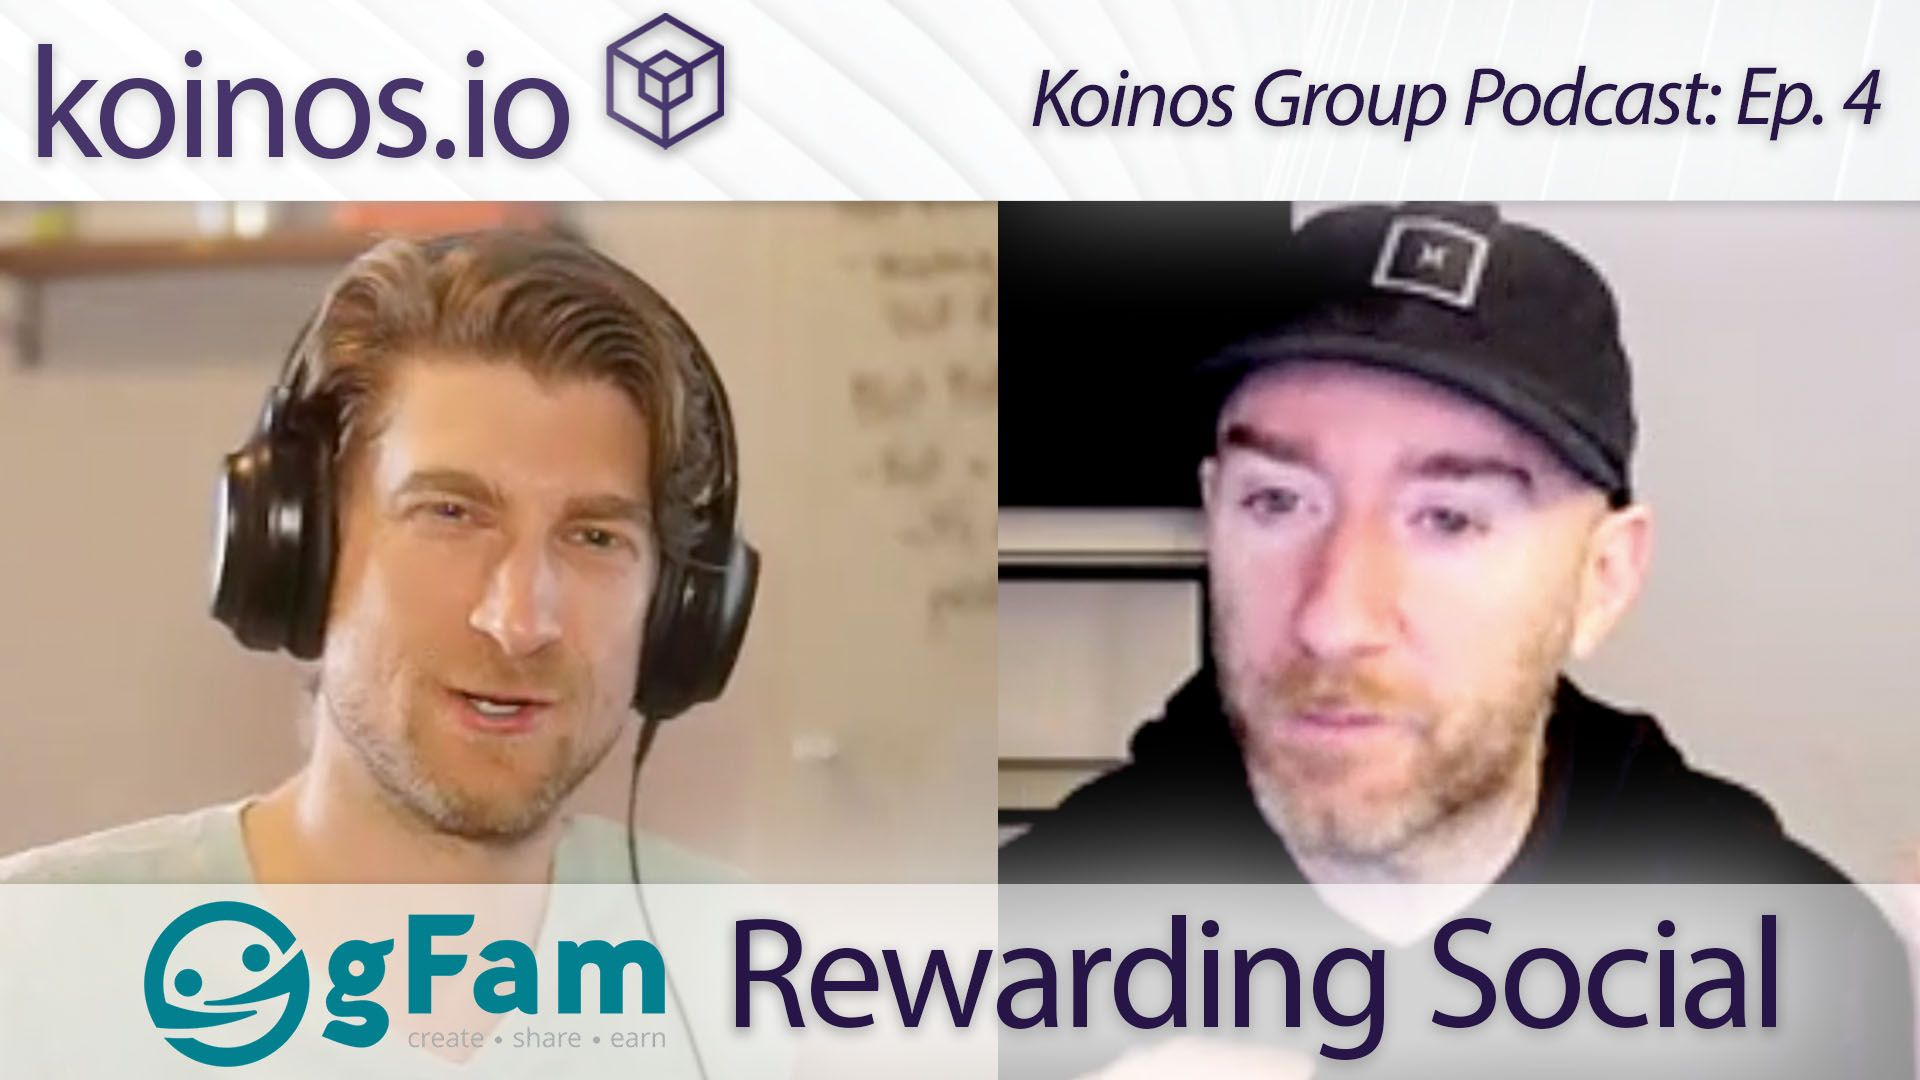 /how-sustainable-is-crypto-rewards-for-content-creators-9m1e34kx feature image